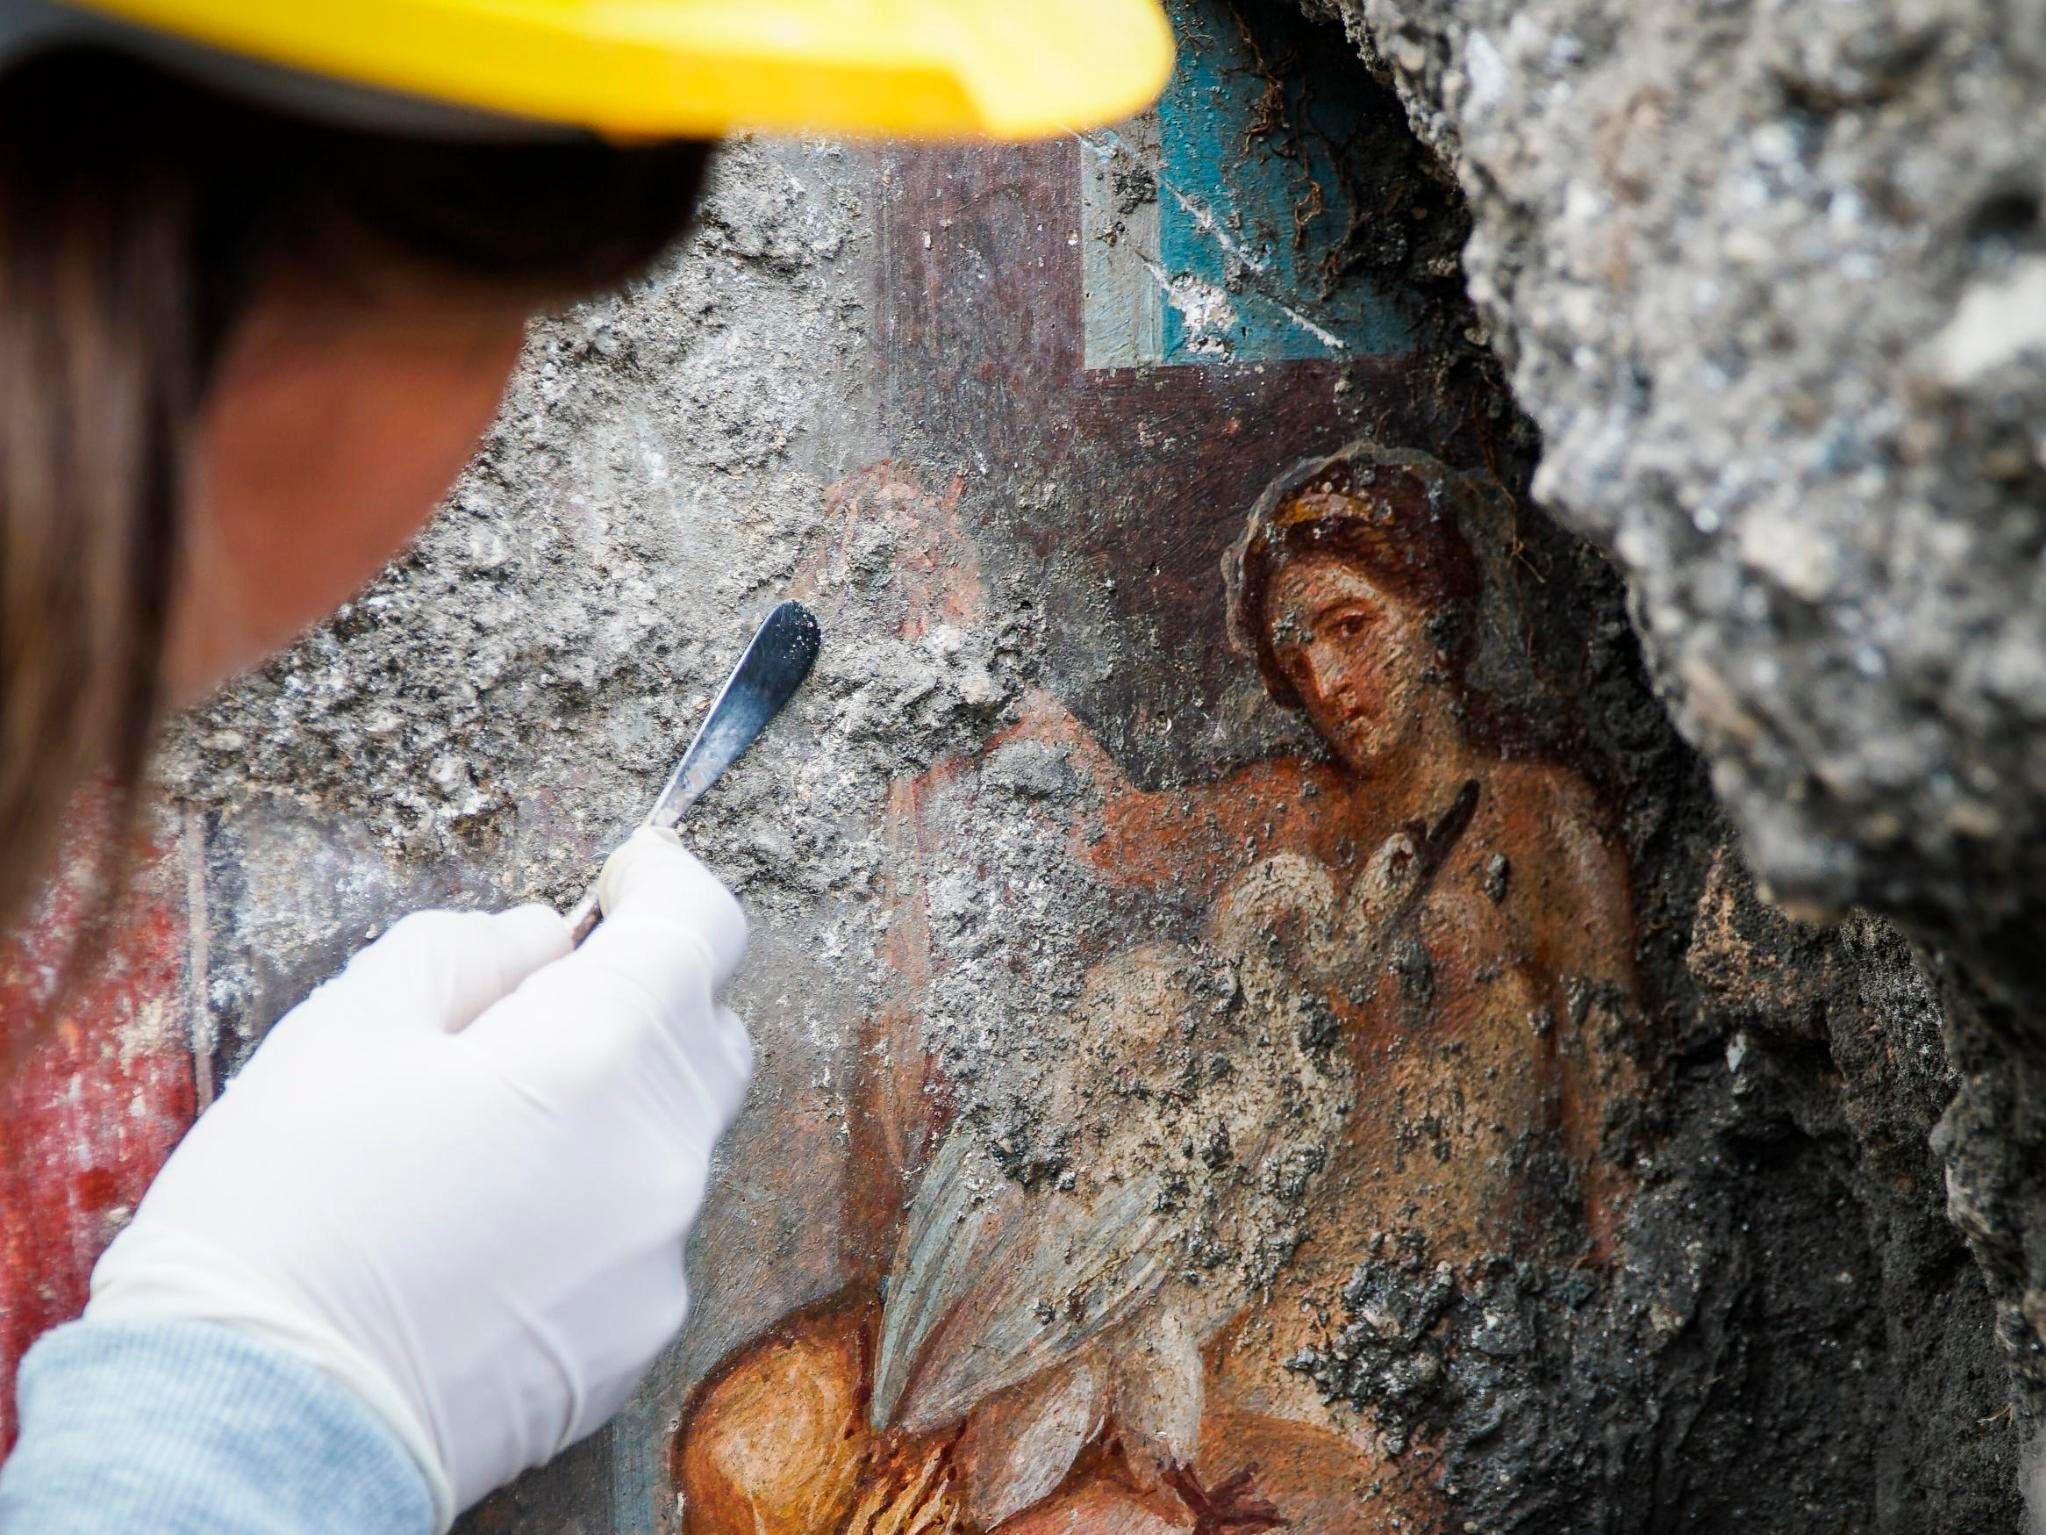 An archeologist cleans up the fresco ''Leda e il cigno'' (Leda and the swan) discovered last Friday in the Regio V archeological area in Pompeii, near Naples, Italy, Monday, Nov. 19, 2018. The fresco depicts a story and art subject of Greek mythology, with goddess Leda being impregnated by Zeus -  Jupiter in Roman mythology - in the form of a swan.